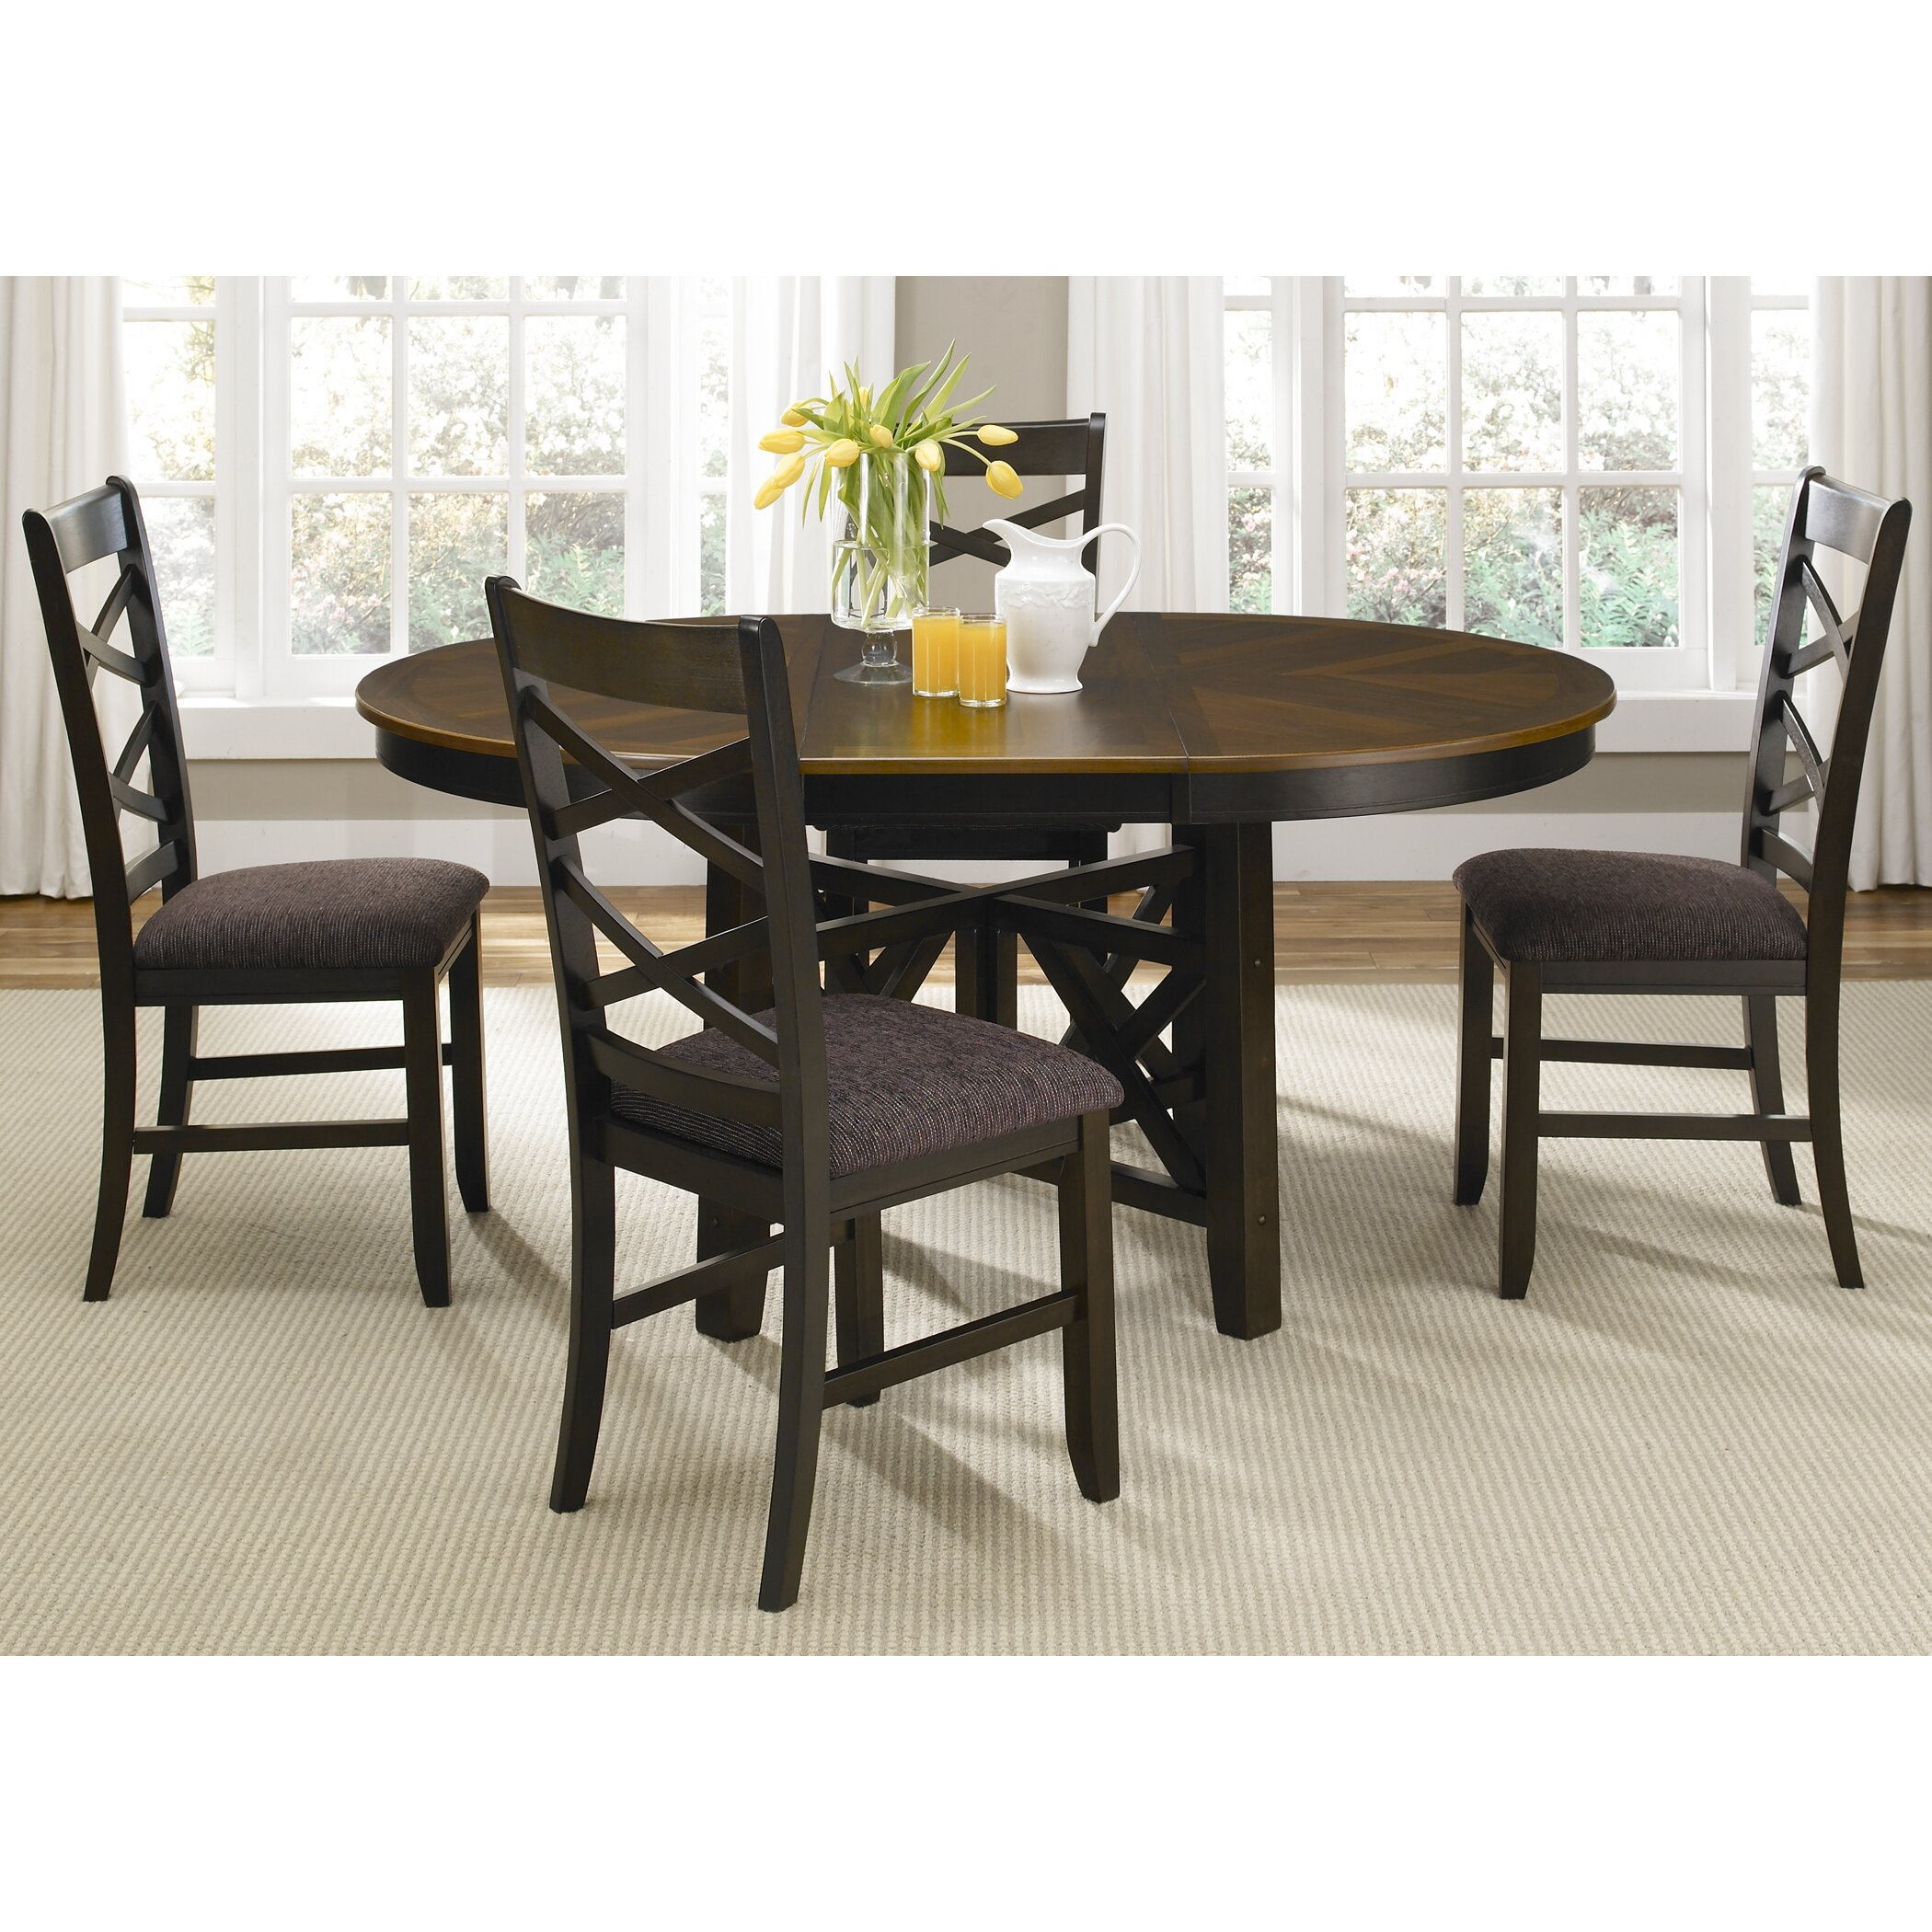 Contemporary Round Dining Table For 6 Oval Kitchen Dining Tables Wayfair